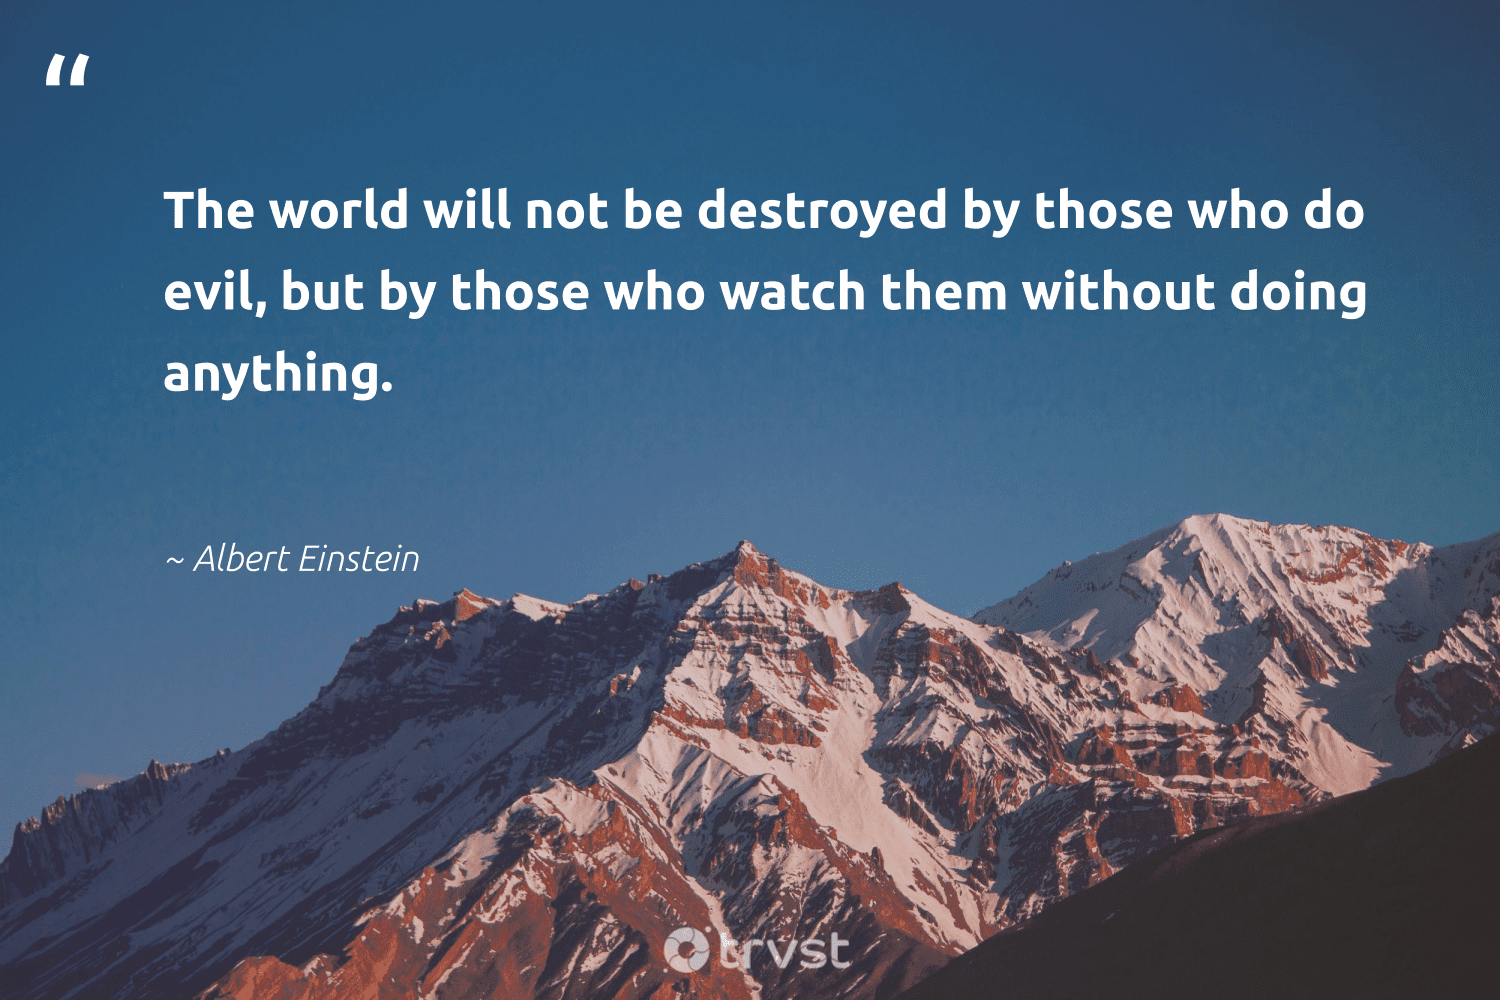 """""""The world will not be destroyed by those who do evil, but by those who watch them without doing anything.""""  - Albert Einstein #trvst #quotes #climatefight #takeaction #climateaction #dotherightthing #ecoconscious #bethechange #globalwarming #thinkgreen #climate #beinspired"""